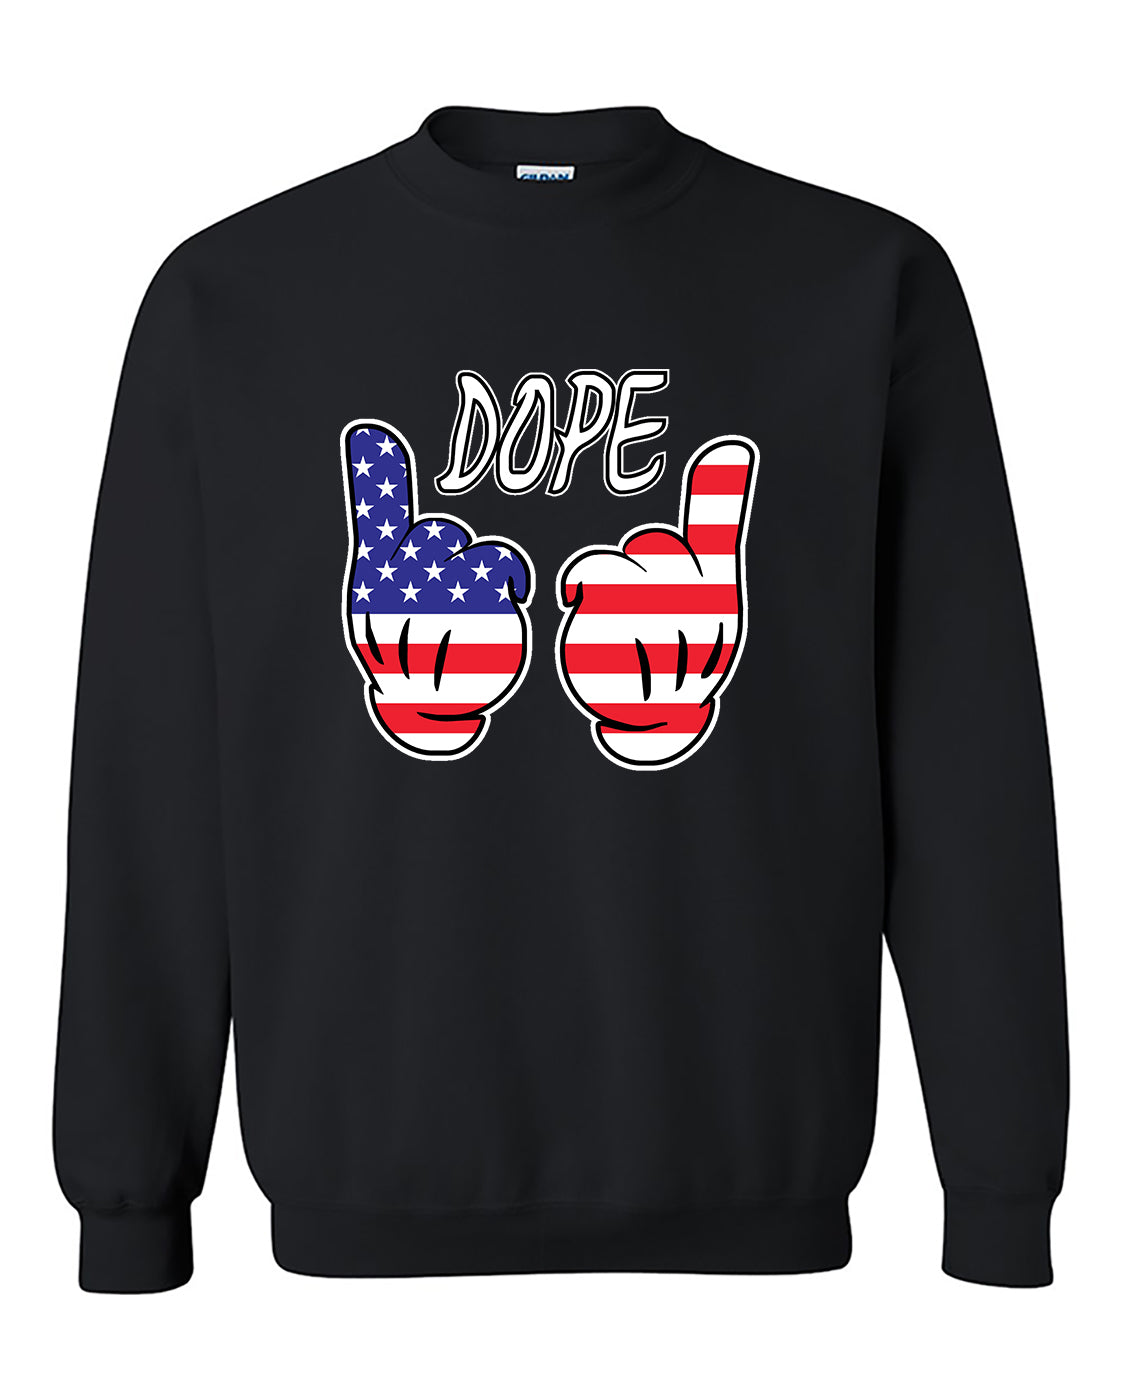 Mickey Hand Dope USA Flag Hand American Flag Independence day Crewneck Sweater